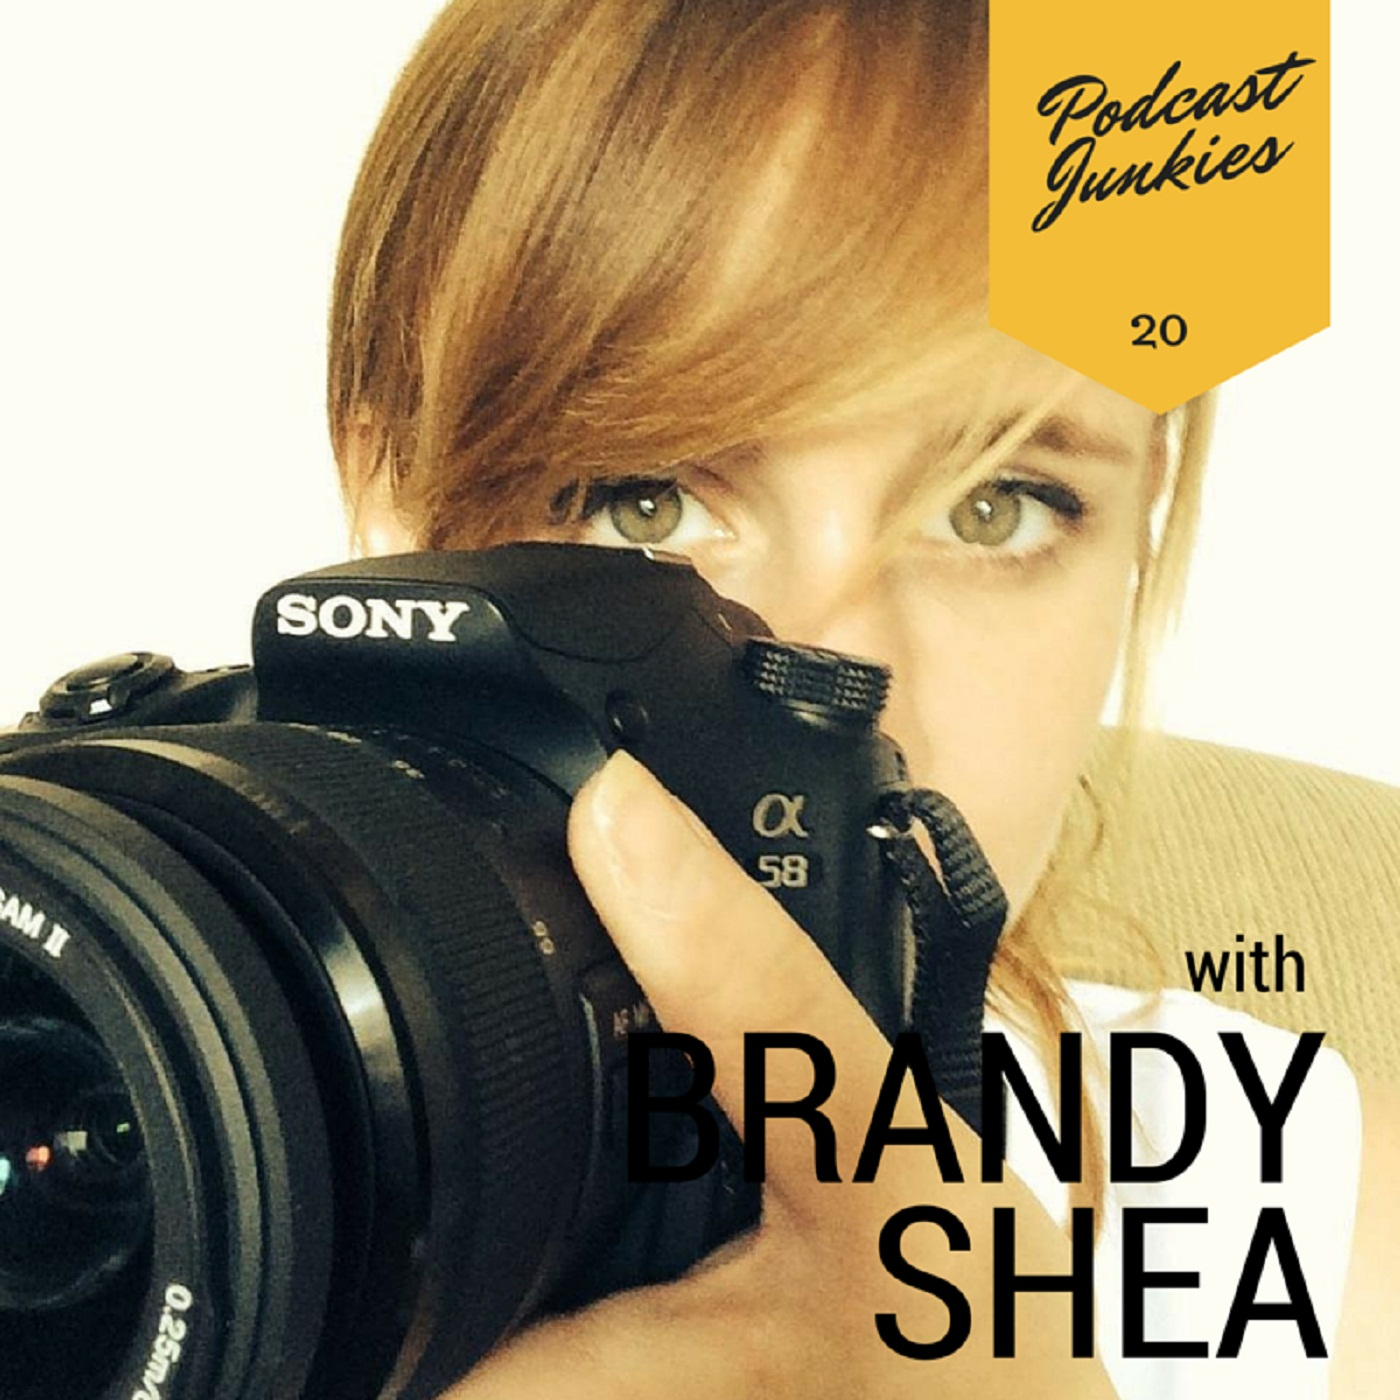 020 Brandy Shea | The Quality Thrives Campaign Inspires Brandy Shea Daily